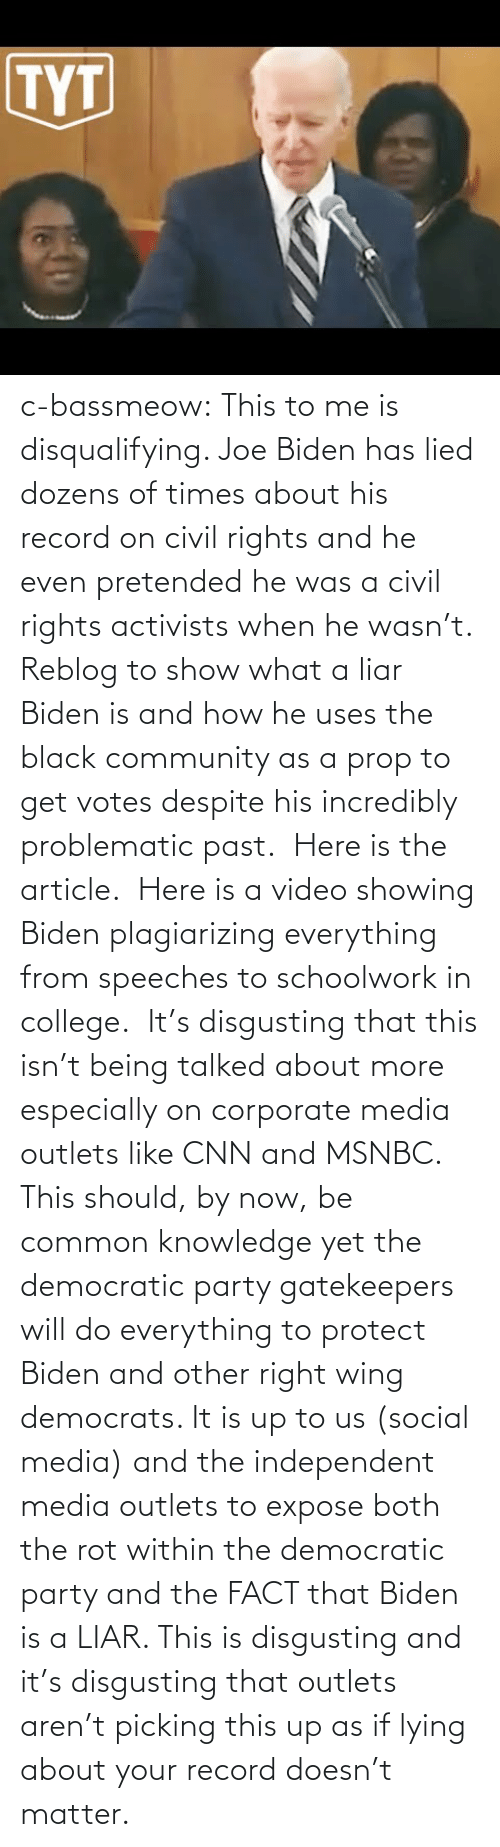 Joe Biden: c-bassmeow: This to me is disqualifying. Joe Biden has lied dozens of times about his record on civil rights and he even pretended he was a civil rights activists when he wasn't. Reblog to show what a liar Biden is and how he uses the black community as a prop to get votes despite his incredibly problematic past.   Here is the article.   Here is a video showing Biden plagiarizing everything from speeches to schoolwork in college.   It's disgusting that this isn't being talked about more especially on corporate media outlets like CNN and MSNBC. This should, by now, be common knowledge yet the democratic party gatekeepers will do everything to protect Biden and other right wing democrats. It is up to us (social media) and the independent media outlets to expose both the rot within the democratic party and the FACT that Biden is a LIAR. This is disgusting and it's disgusting that outlets aren't picking this up as if lying about your record doesn't matter.